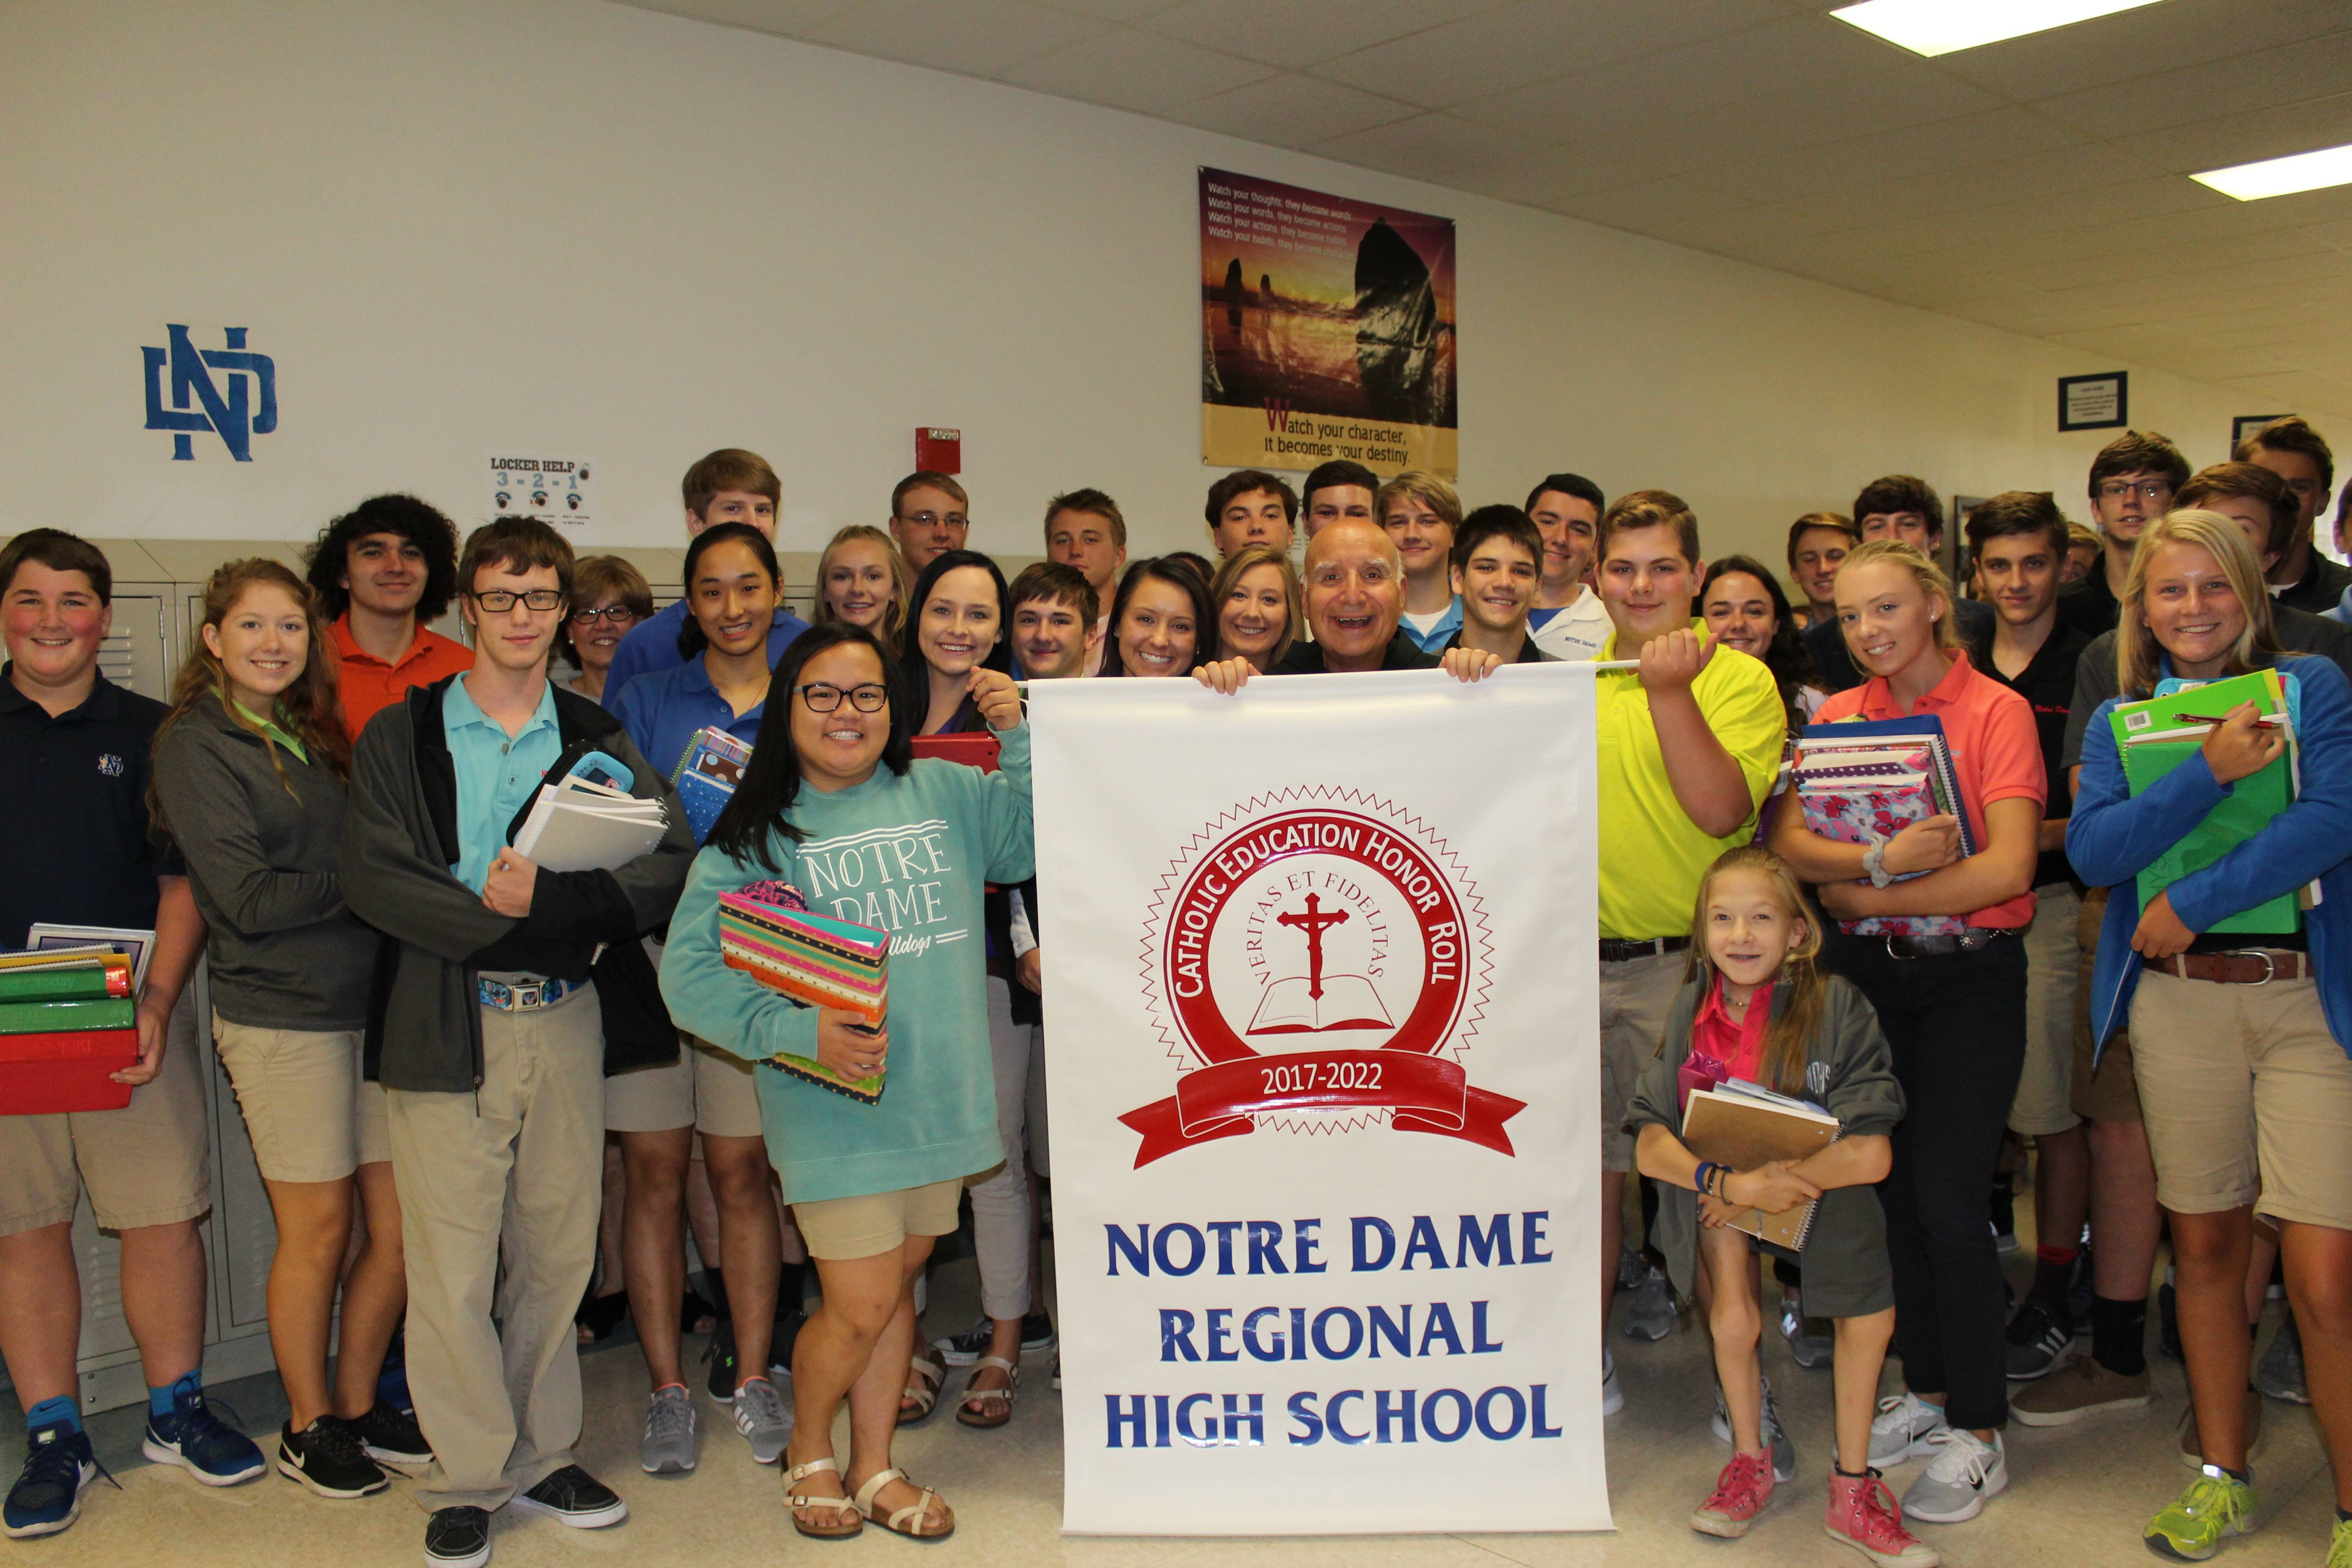 TWELVE YEARS AND COUNTING—Brother David Migliorino, OSF, posed with a group of Notre Dame Regional High School students as they celebrated the school's distinction as a Catholic Education Honor Roll School. The Cape Girardeau high school is home to 507 students where Bro. Migliorino serves as principal. Notre Dame High School been on the list of Catholic Honor Roll schools since 2005. (The Mirror)